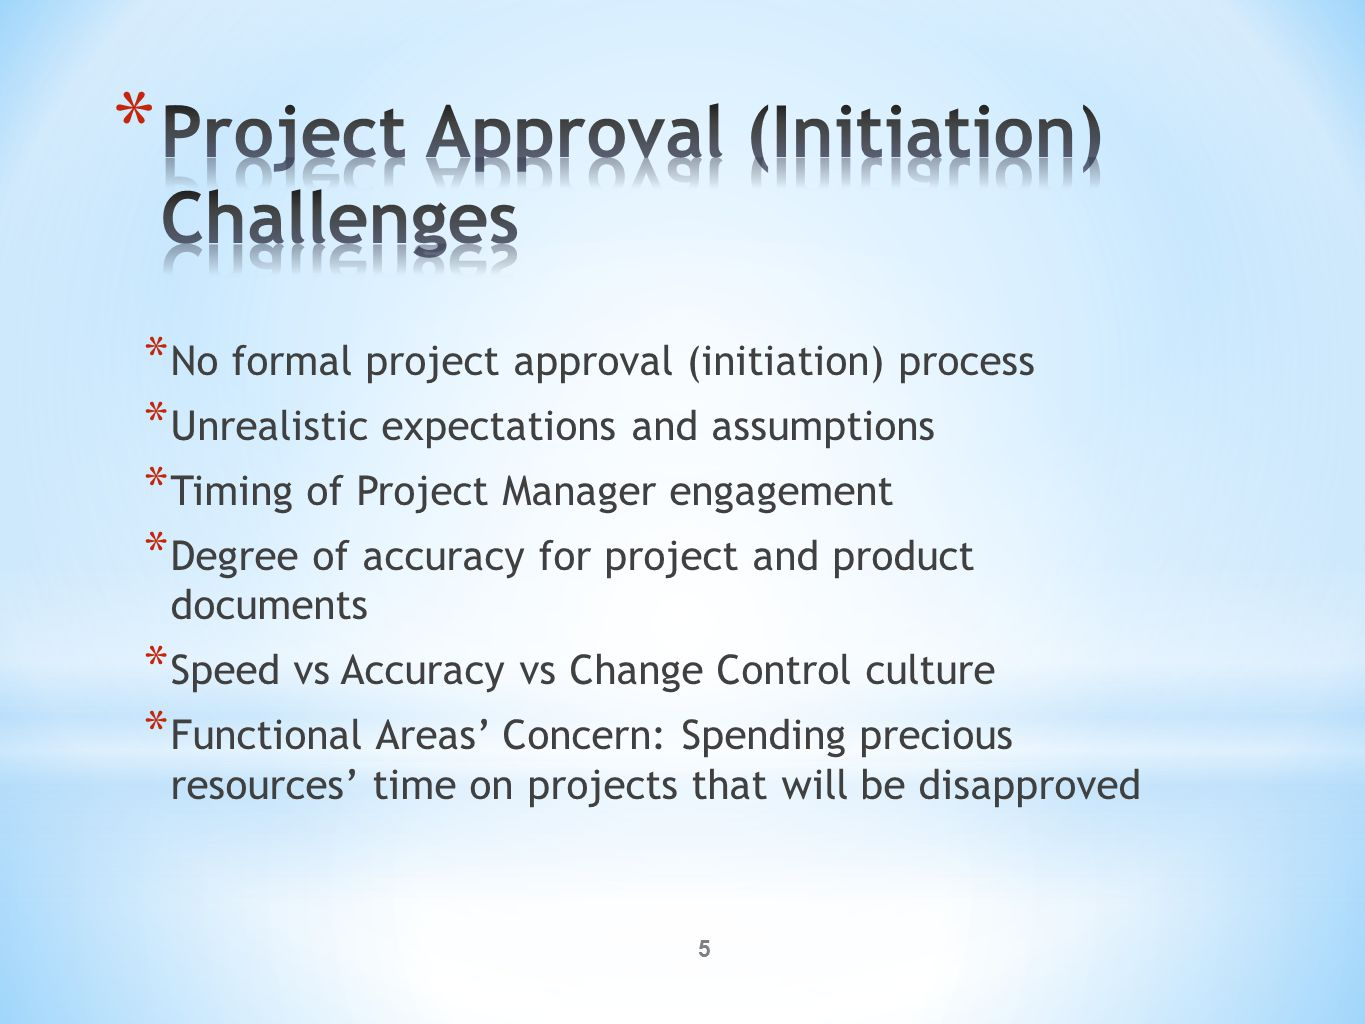 5 * No formal project approval (initiation) process * Unrealistic expectations and assumptions * Timing of Project Manager engagement * Degree of accuracy for project and product documents * Speed vs Accuracy vs Change Control culture * Functional Areas' Concern: Spending precious resources' time on projects that will be disapproved